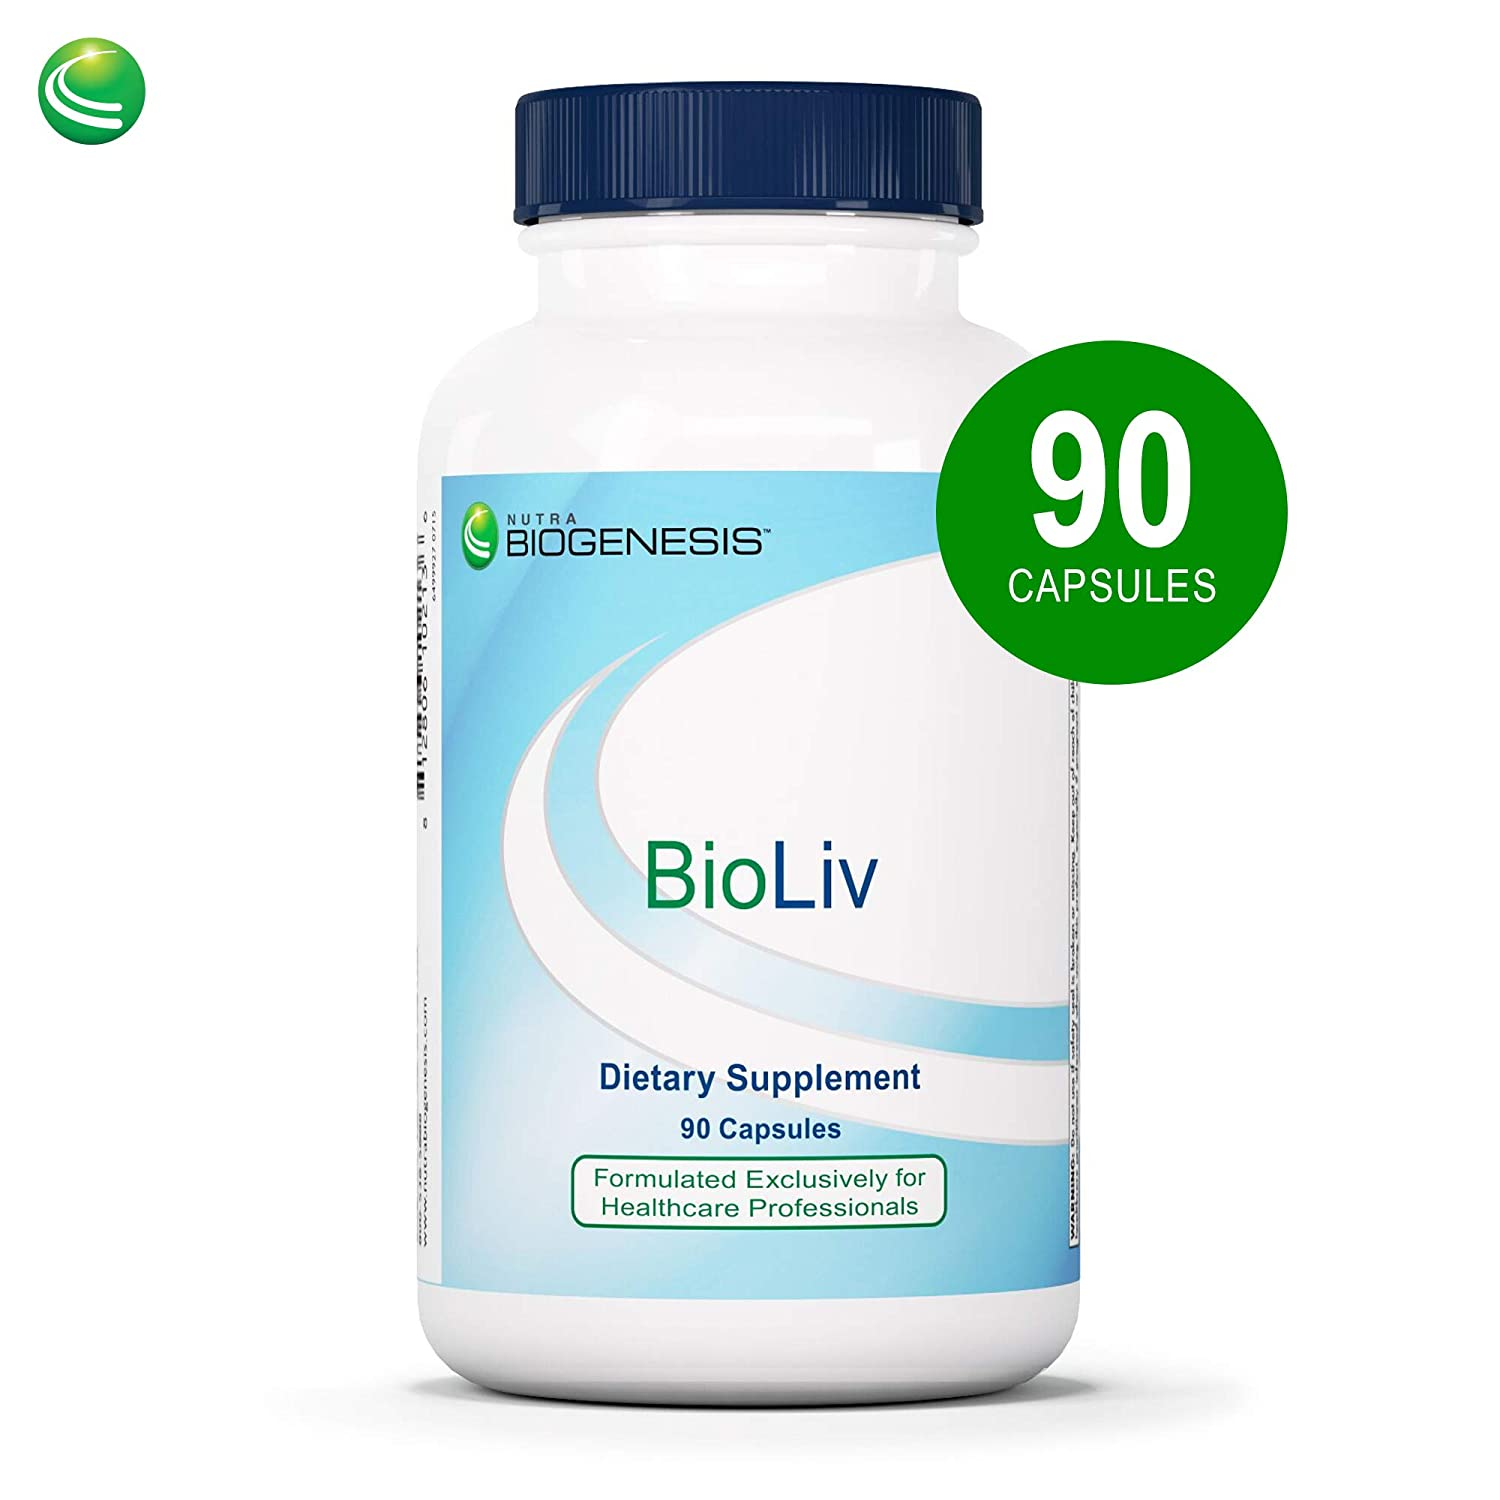 Nutra BioGenesis BioLiv – Choline, Betaine HCl and Dandelion Root to Help Support Bile Flow, Liver Health and Gallbladder Function- 90 Capsules